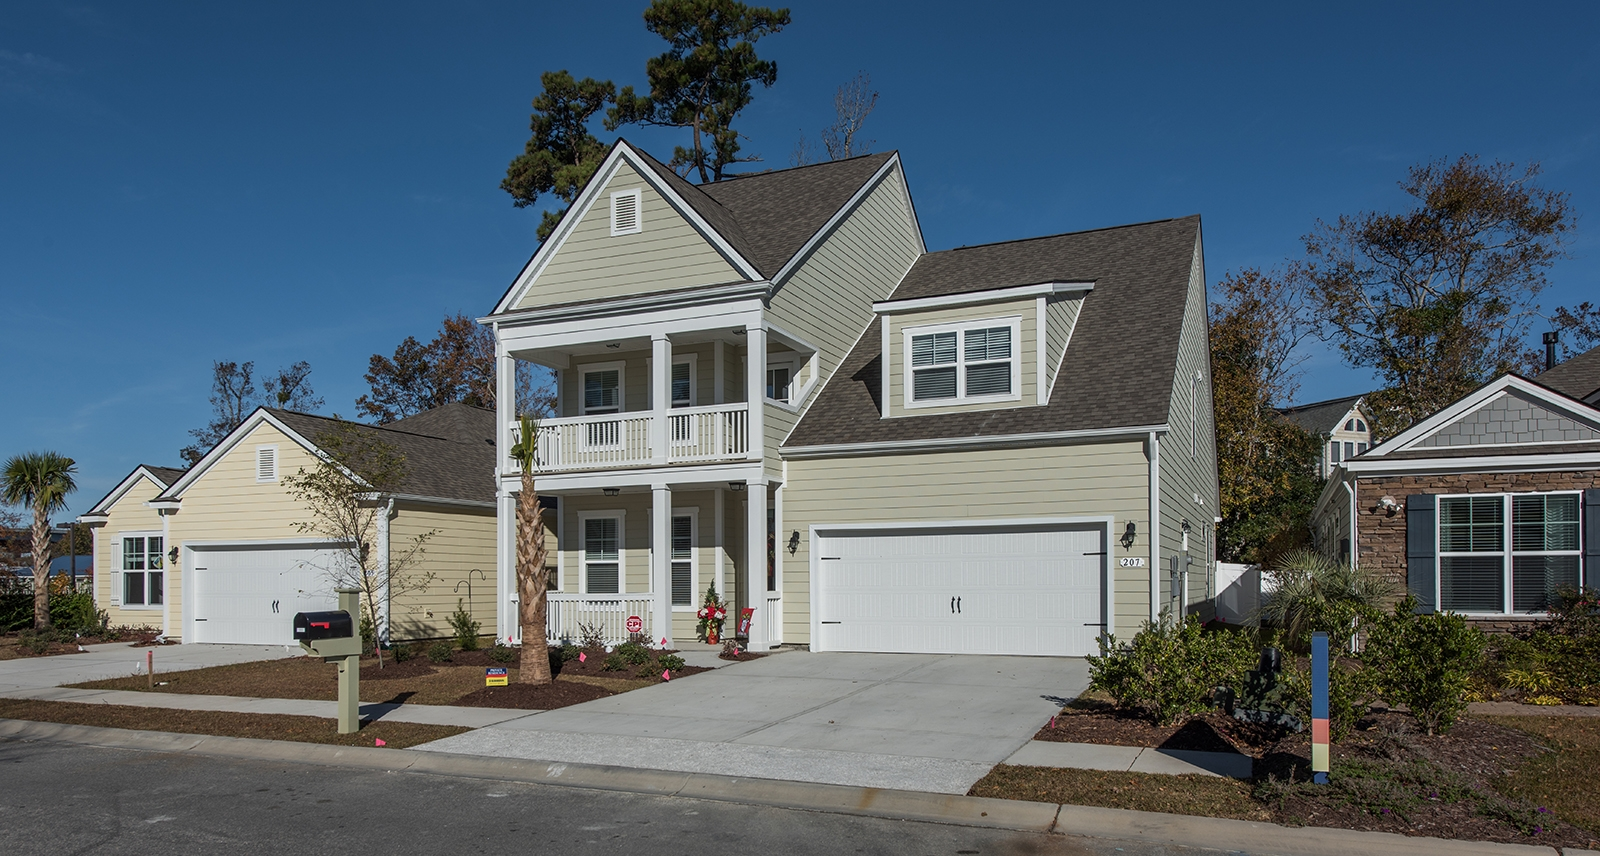 Belle Development In Myrtle Beach South Carolina